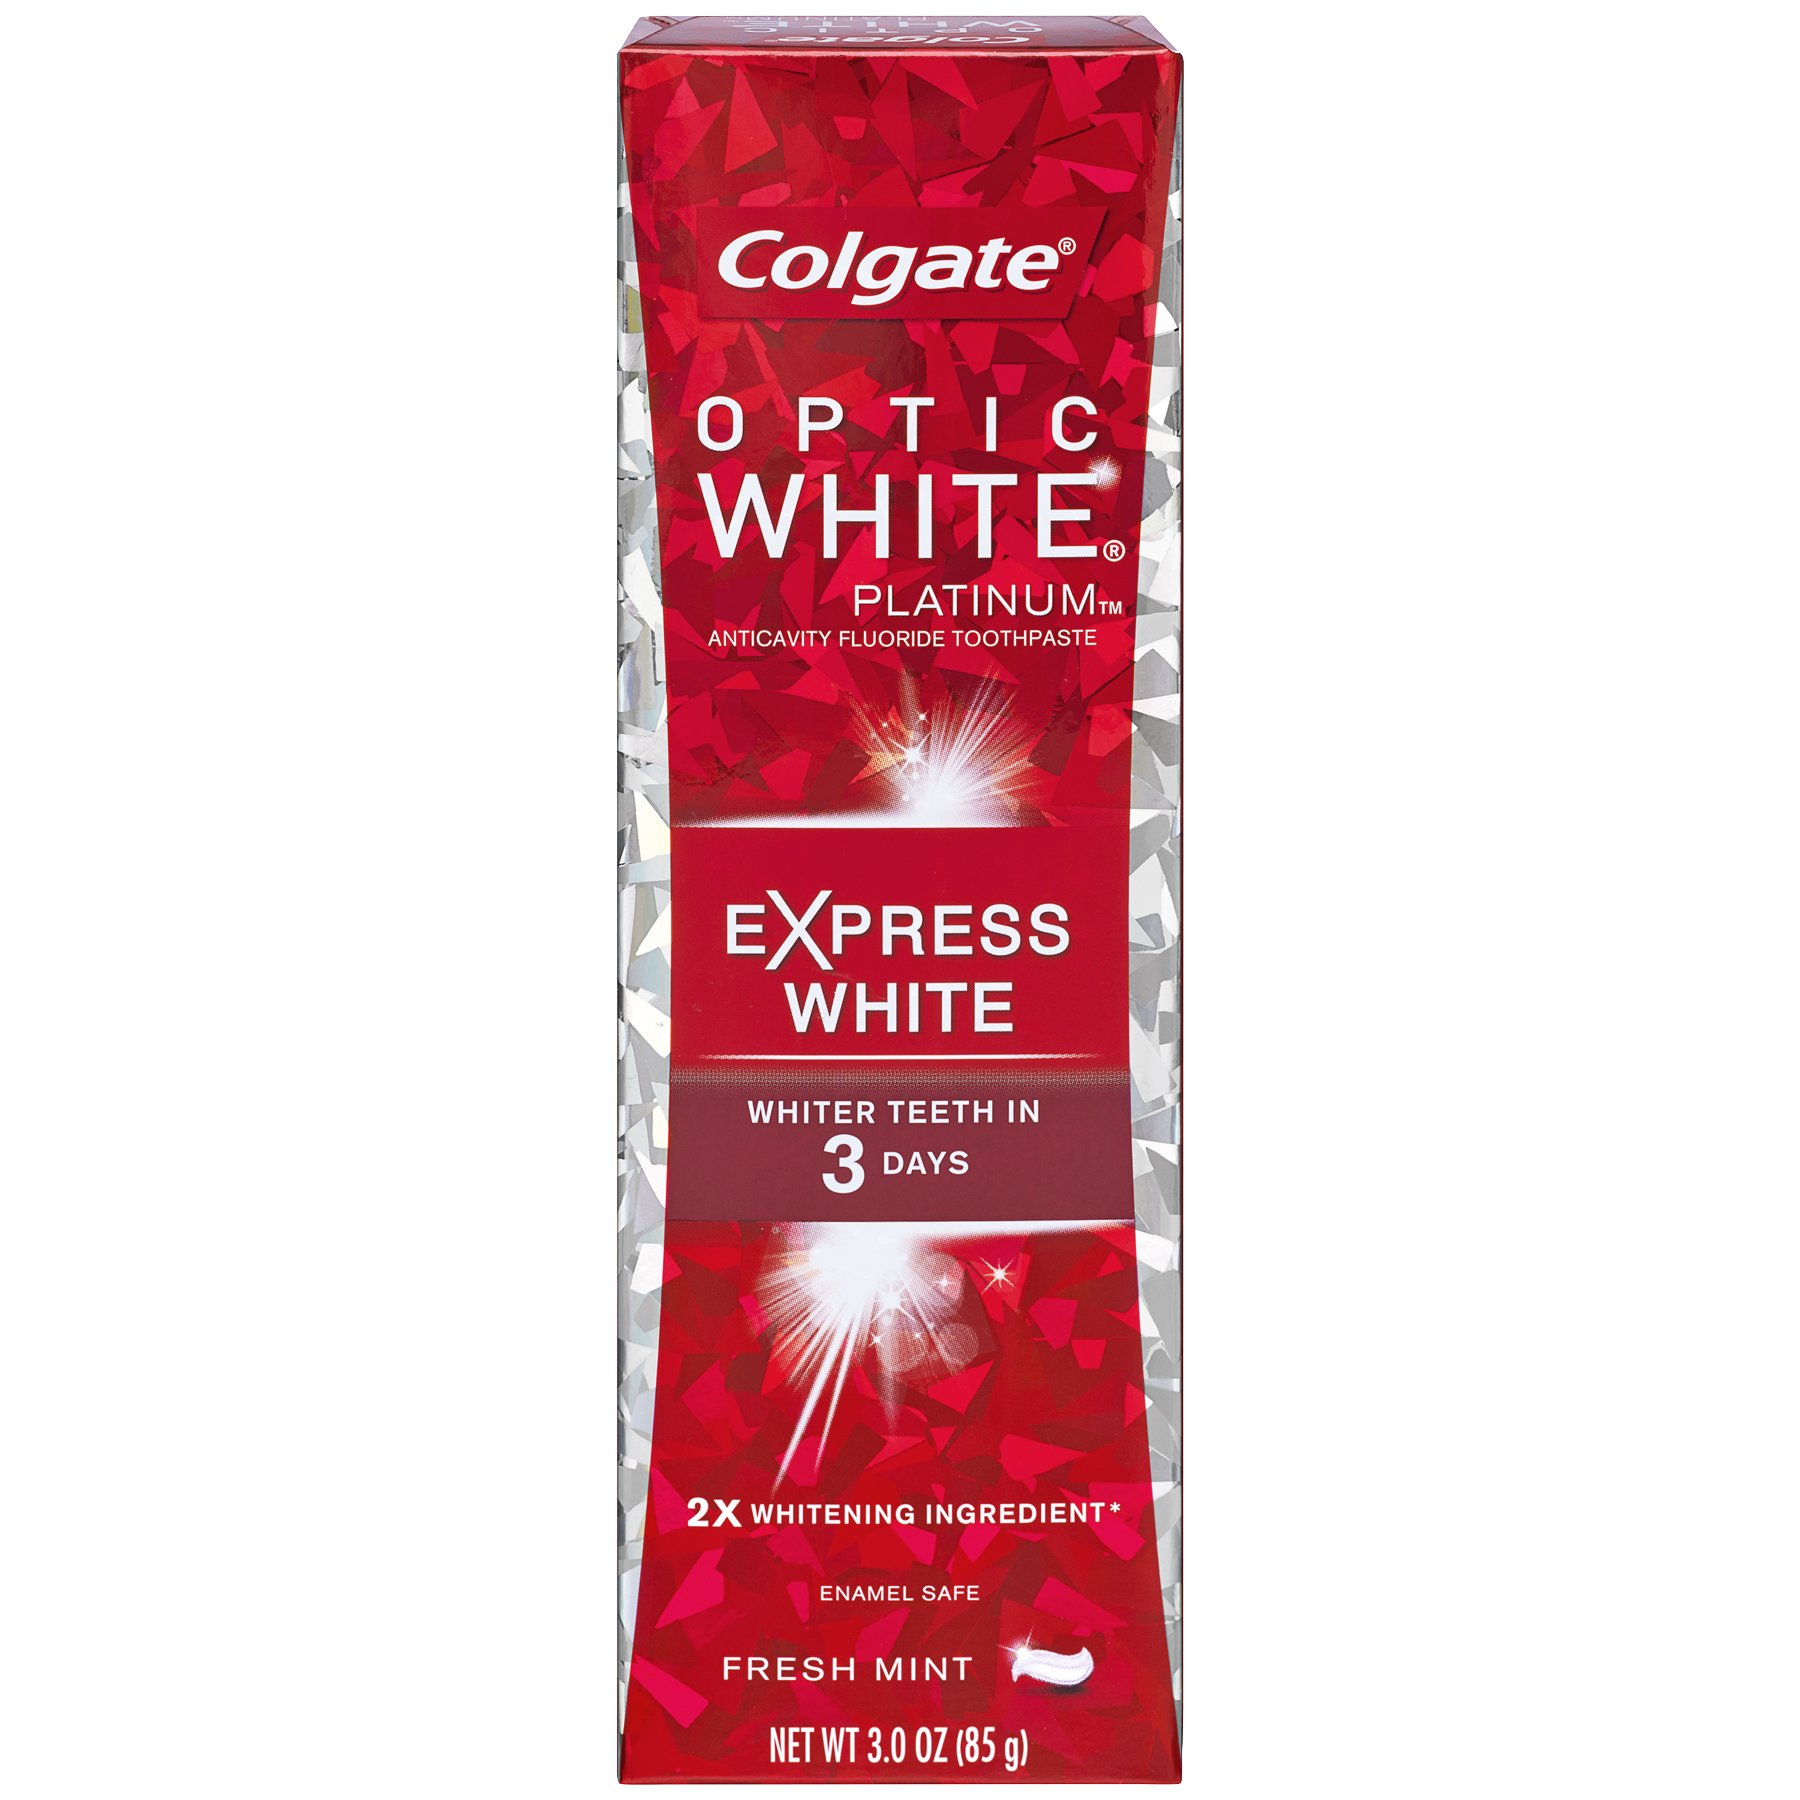 Colgate Optic White Express White Whitening Toothpaste - 3 ounce (Pack of 6)